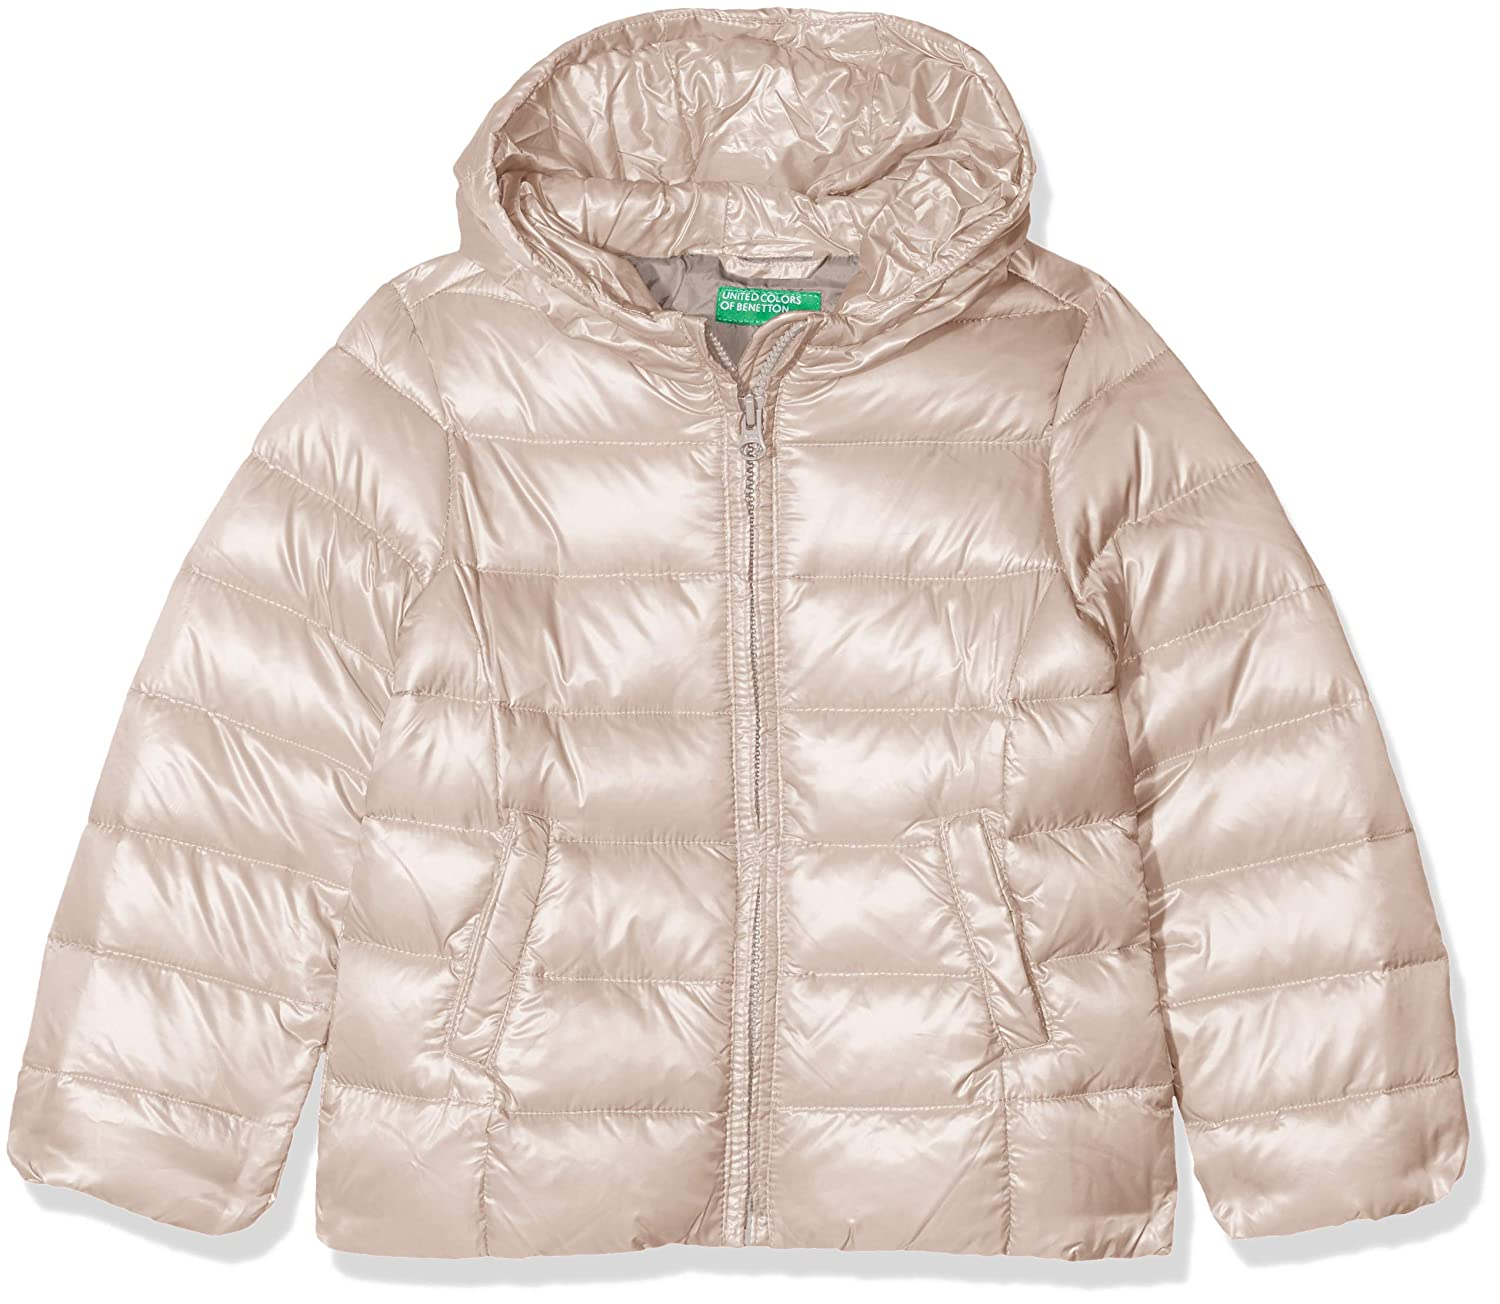 United Colors of Benetton Jacket, Chaqueta para Niñas: Amazon.es: Ropa y accesorios